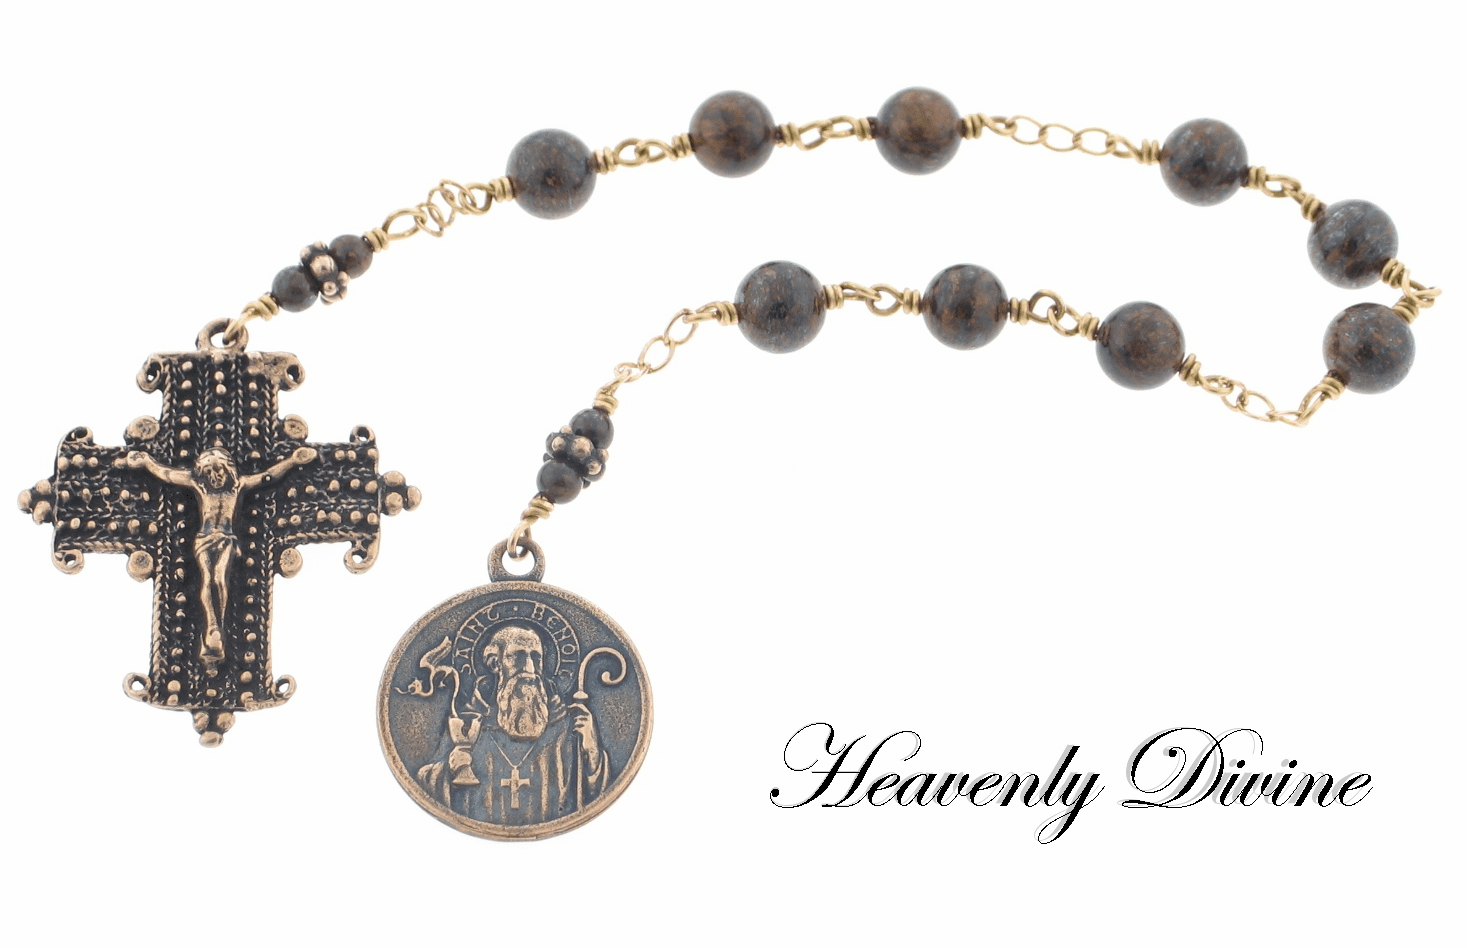 Handmade Bronze Wire Wrapped Gemstone St Benedict Prayer Chaplet by Heavenly Divine